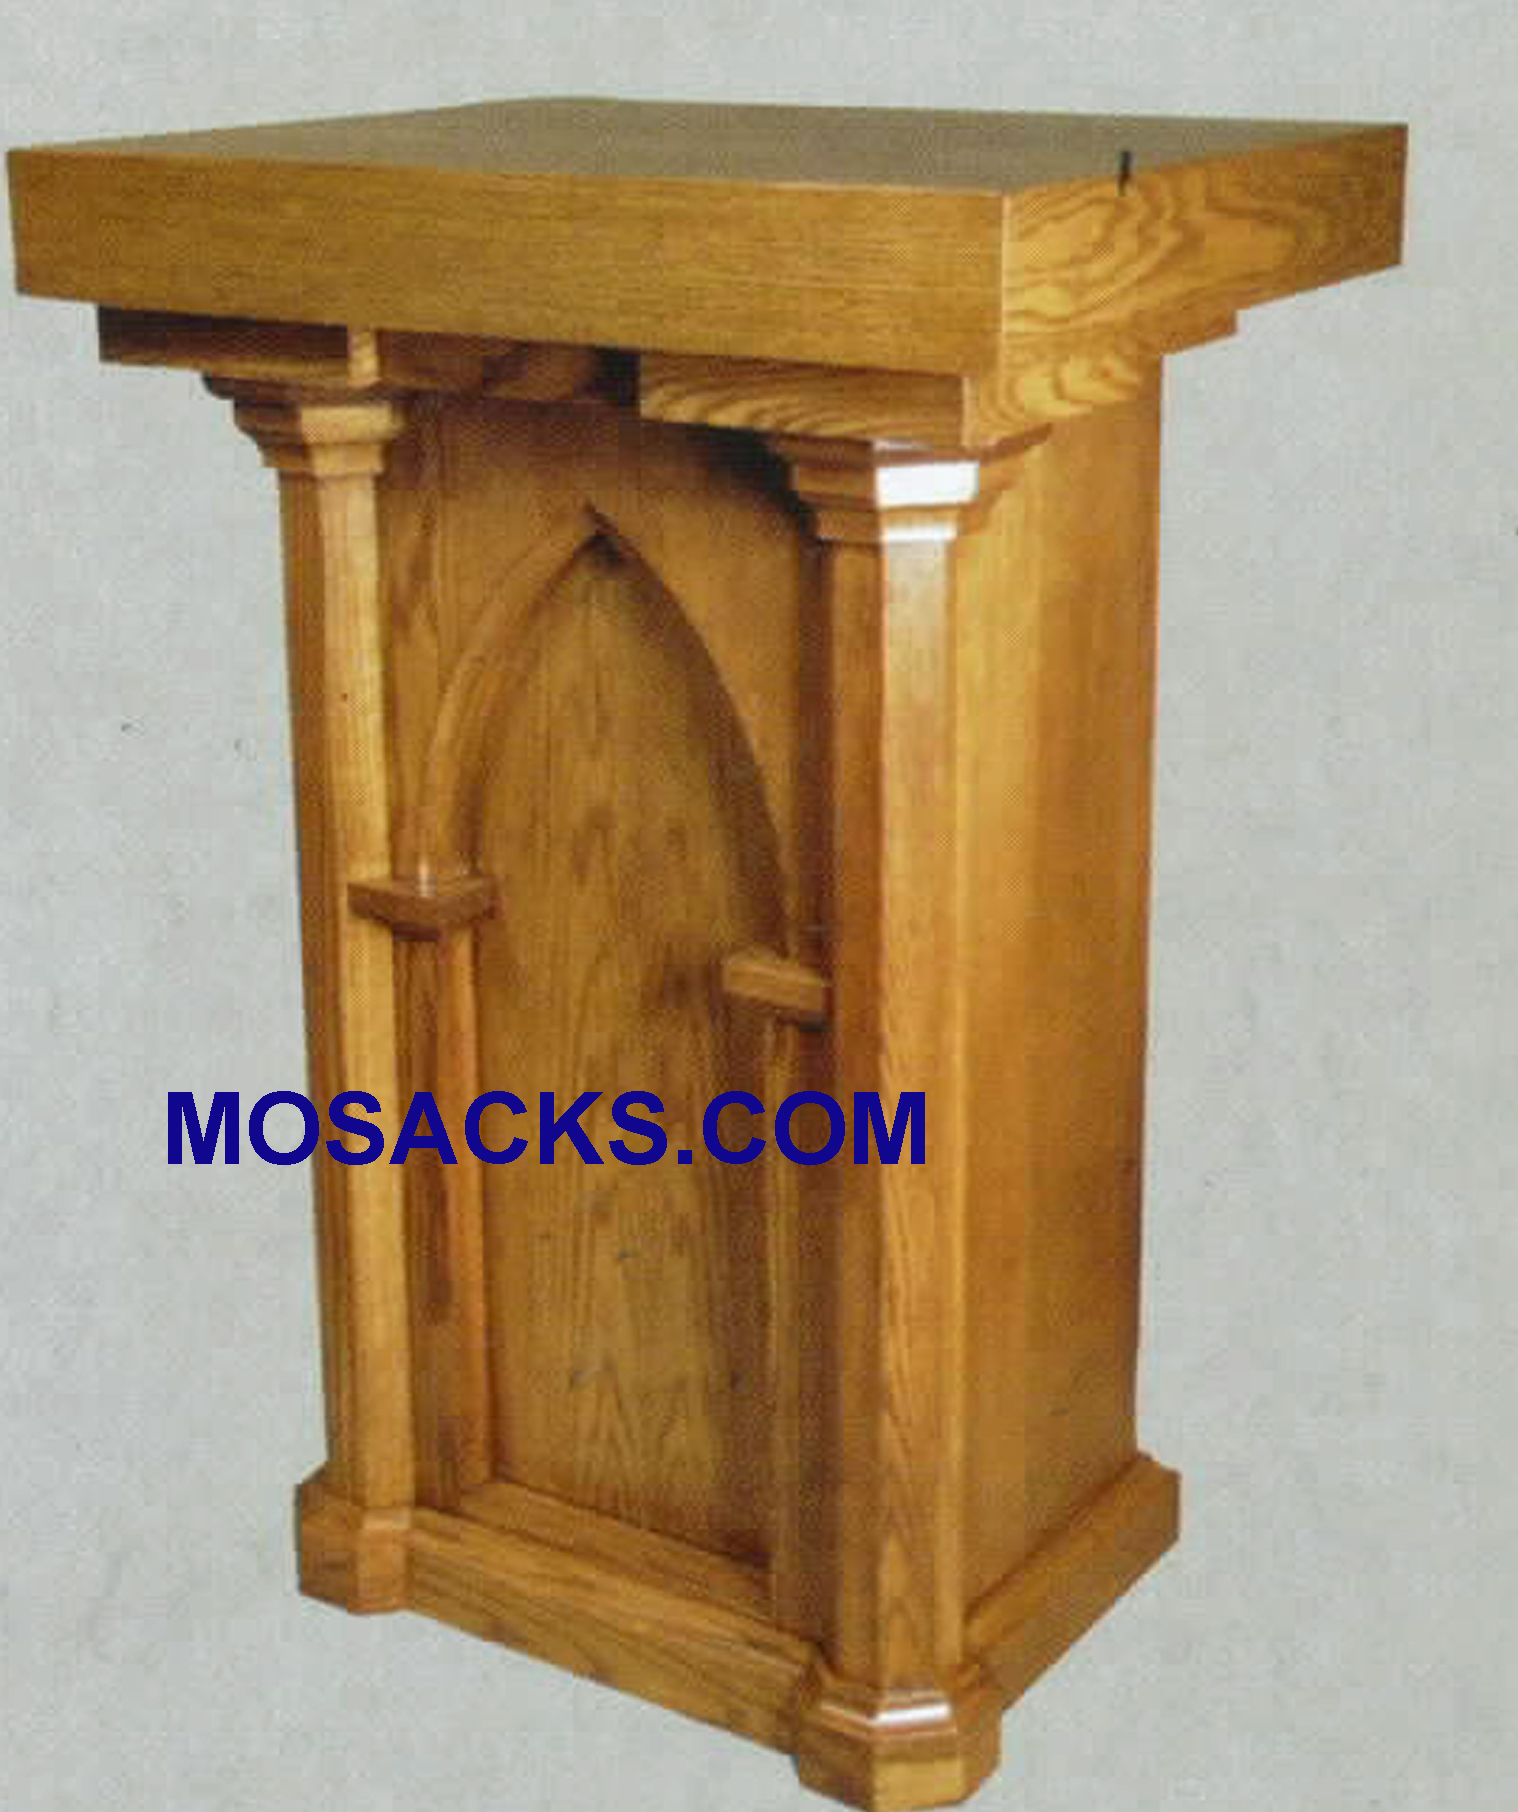 "Tabernacle Stand 30"" w x 24"" d 42"" h 534"